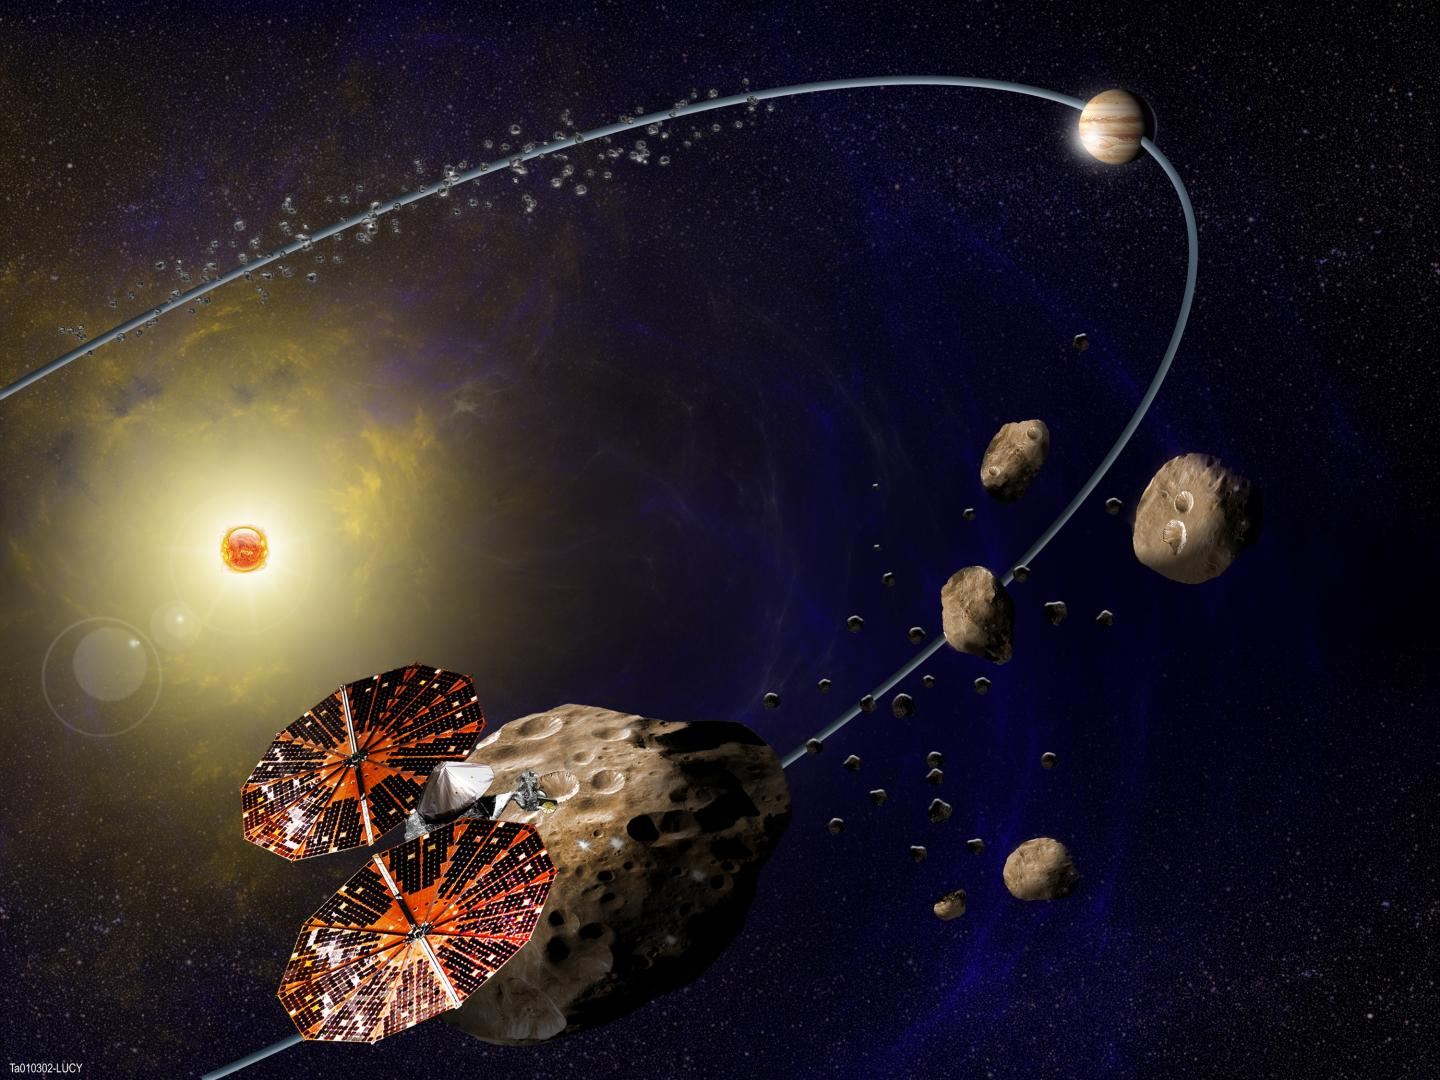 NASA selects mission to study Jupiter's Trojan asteroids